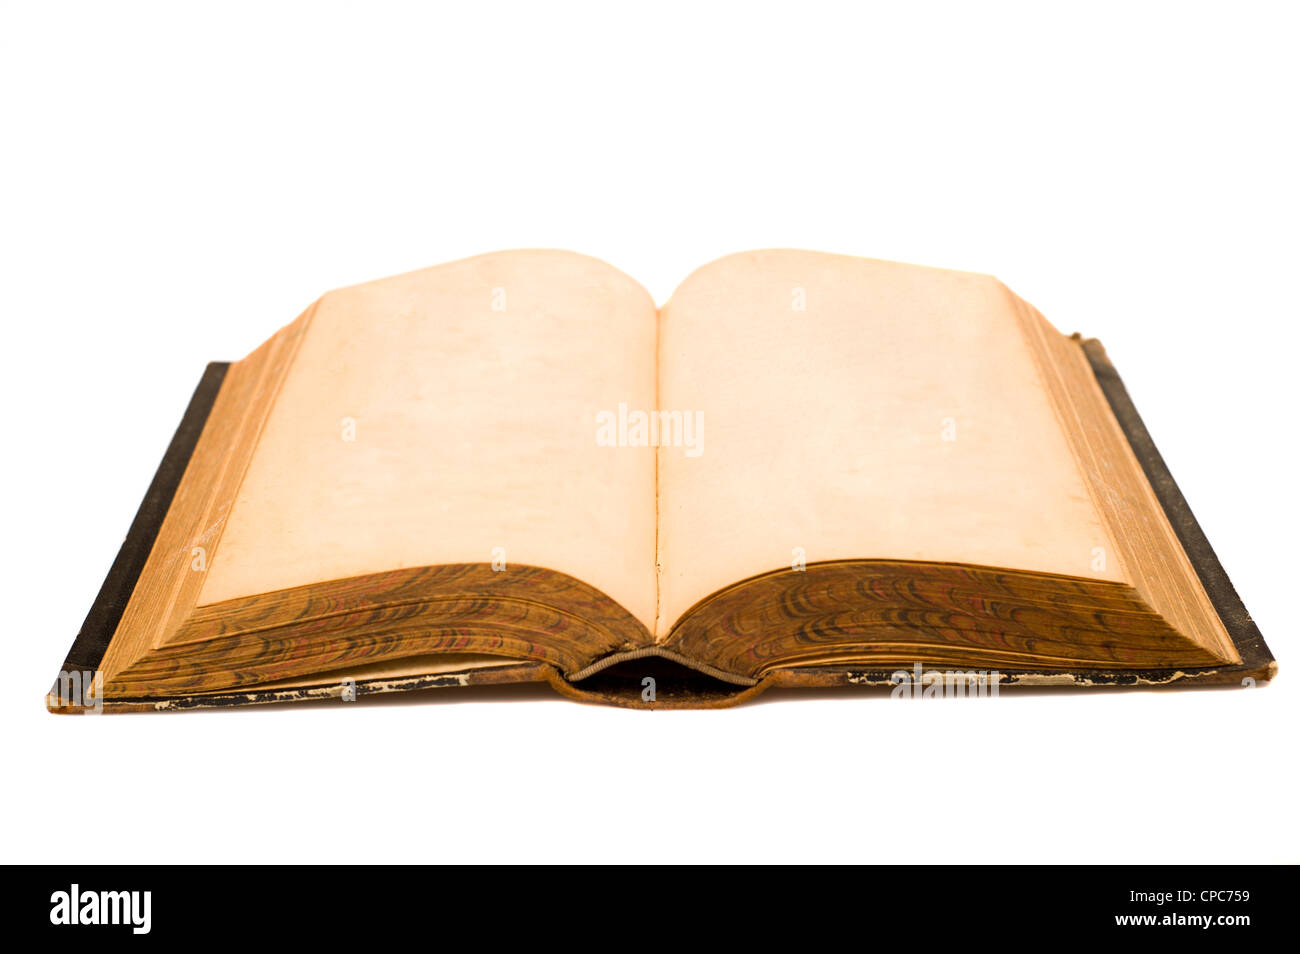 an old open book with blank pages - Stock Image